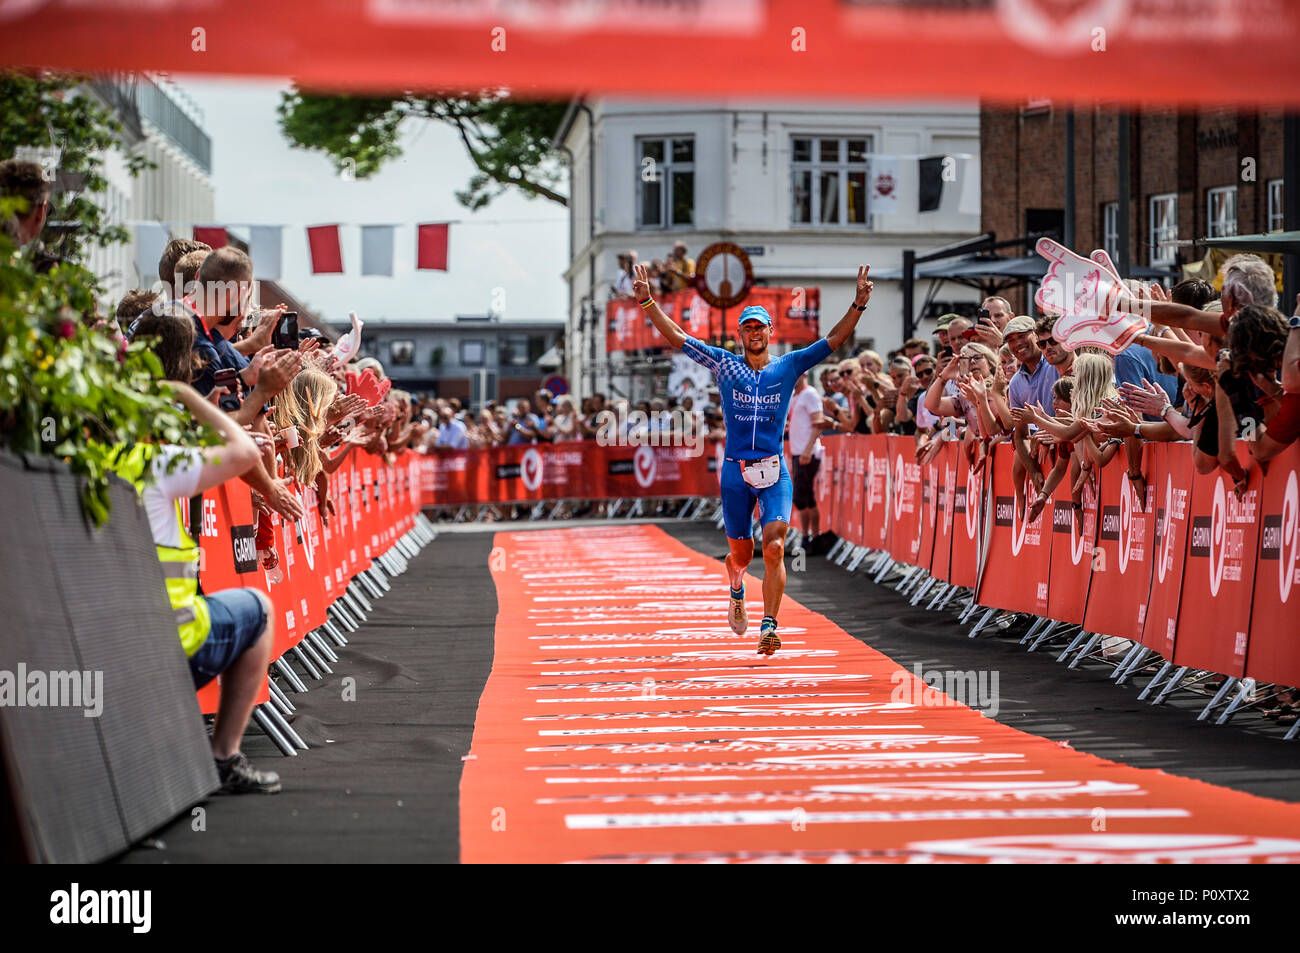 Herning, Denmark, 9th June 2018 UK Sport: Andreas Dreitz on his way to winning the middle distance triathlon in Herning  Credit Northern Sport/Alamy Live News Stock Photo